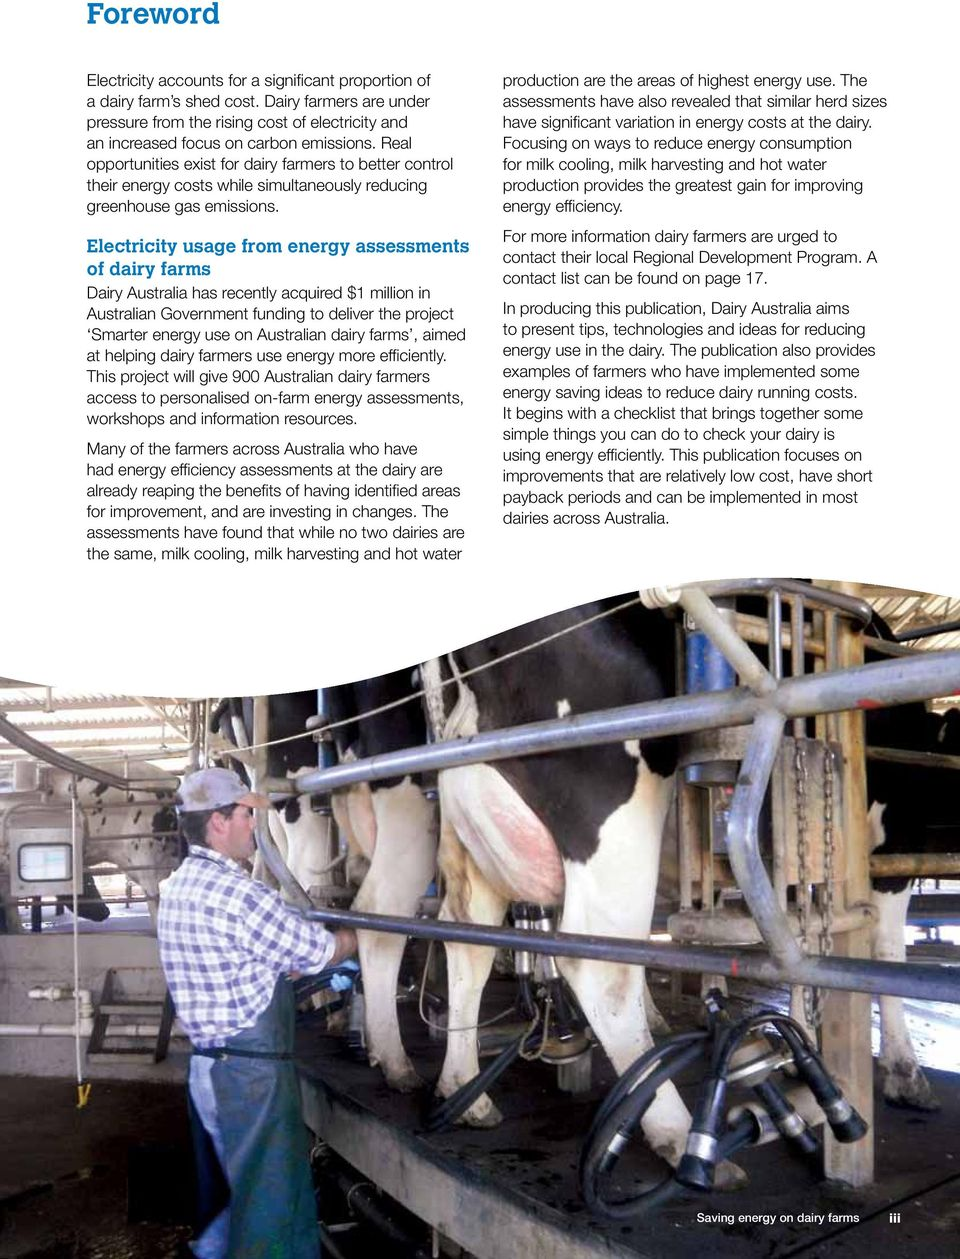 Electricity usage from energy assessments of dairy farms Dairy Australia has recently acquired $1 million in Australian Government funding to deliver the project Smarter energy use on Australian